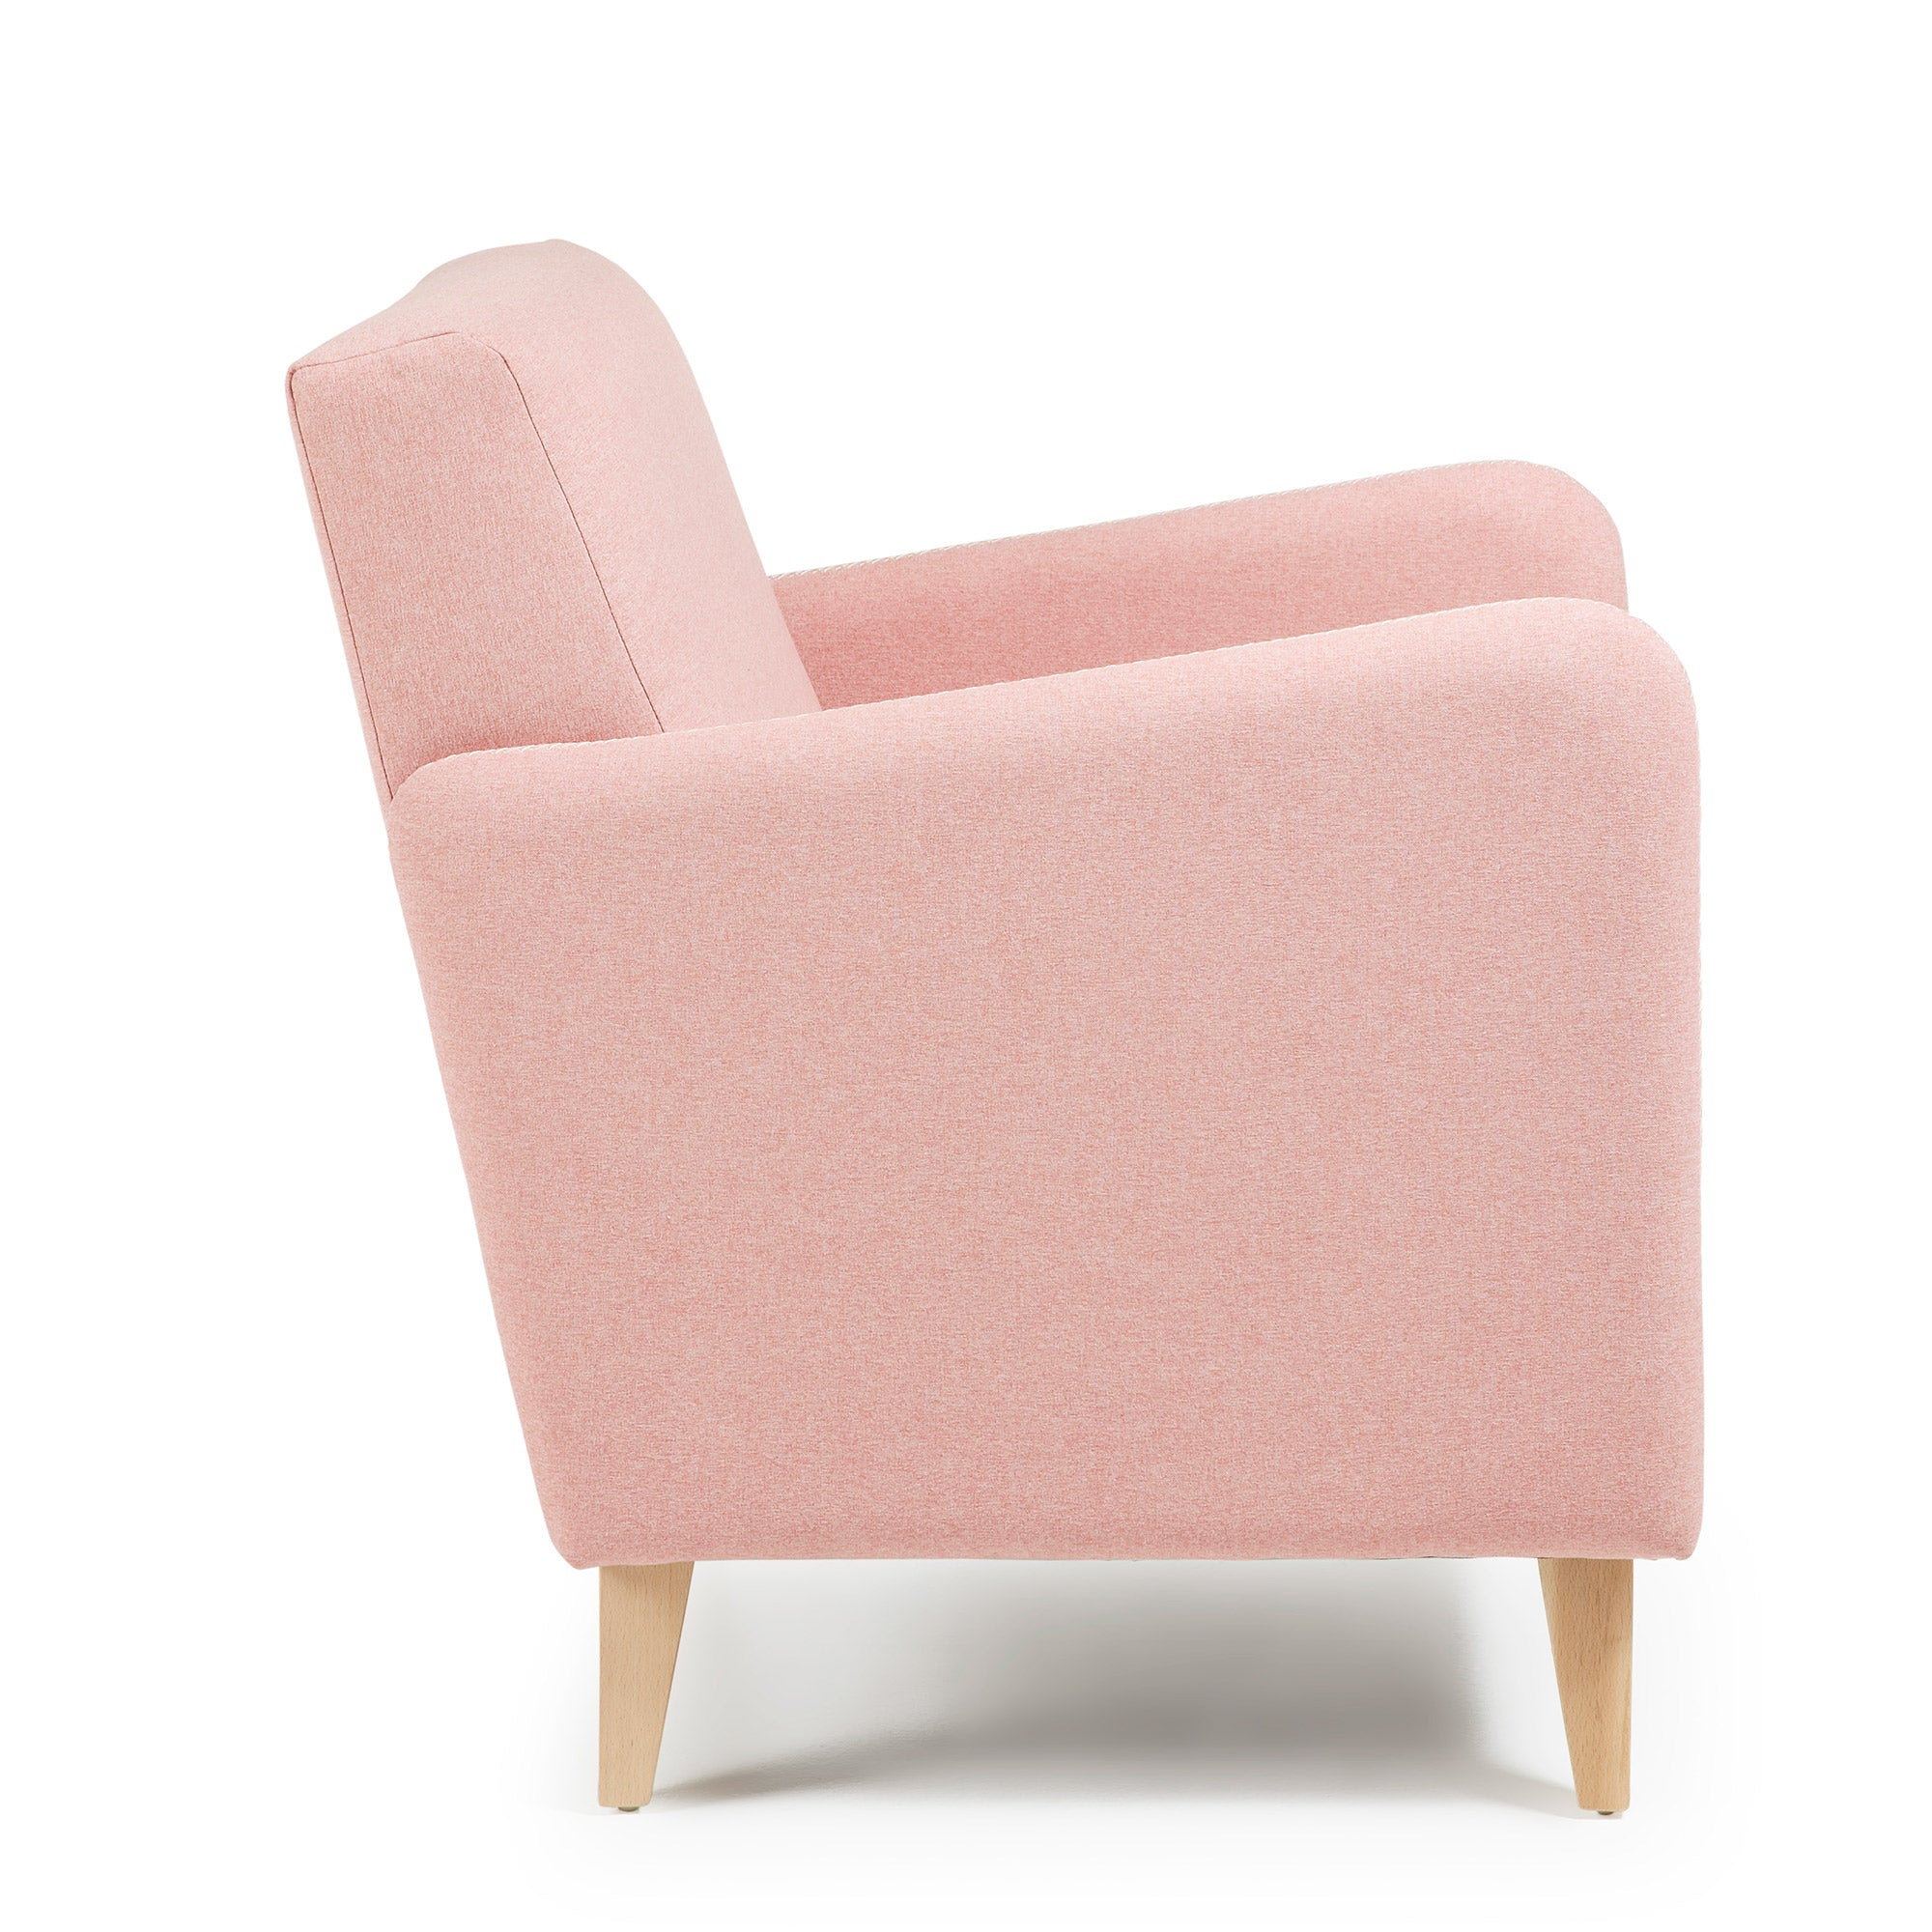 KOPA Armchair in Pink fabric, Armchair - Home-Buy Interiors